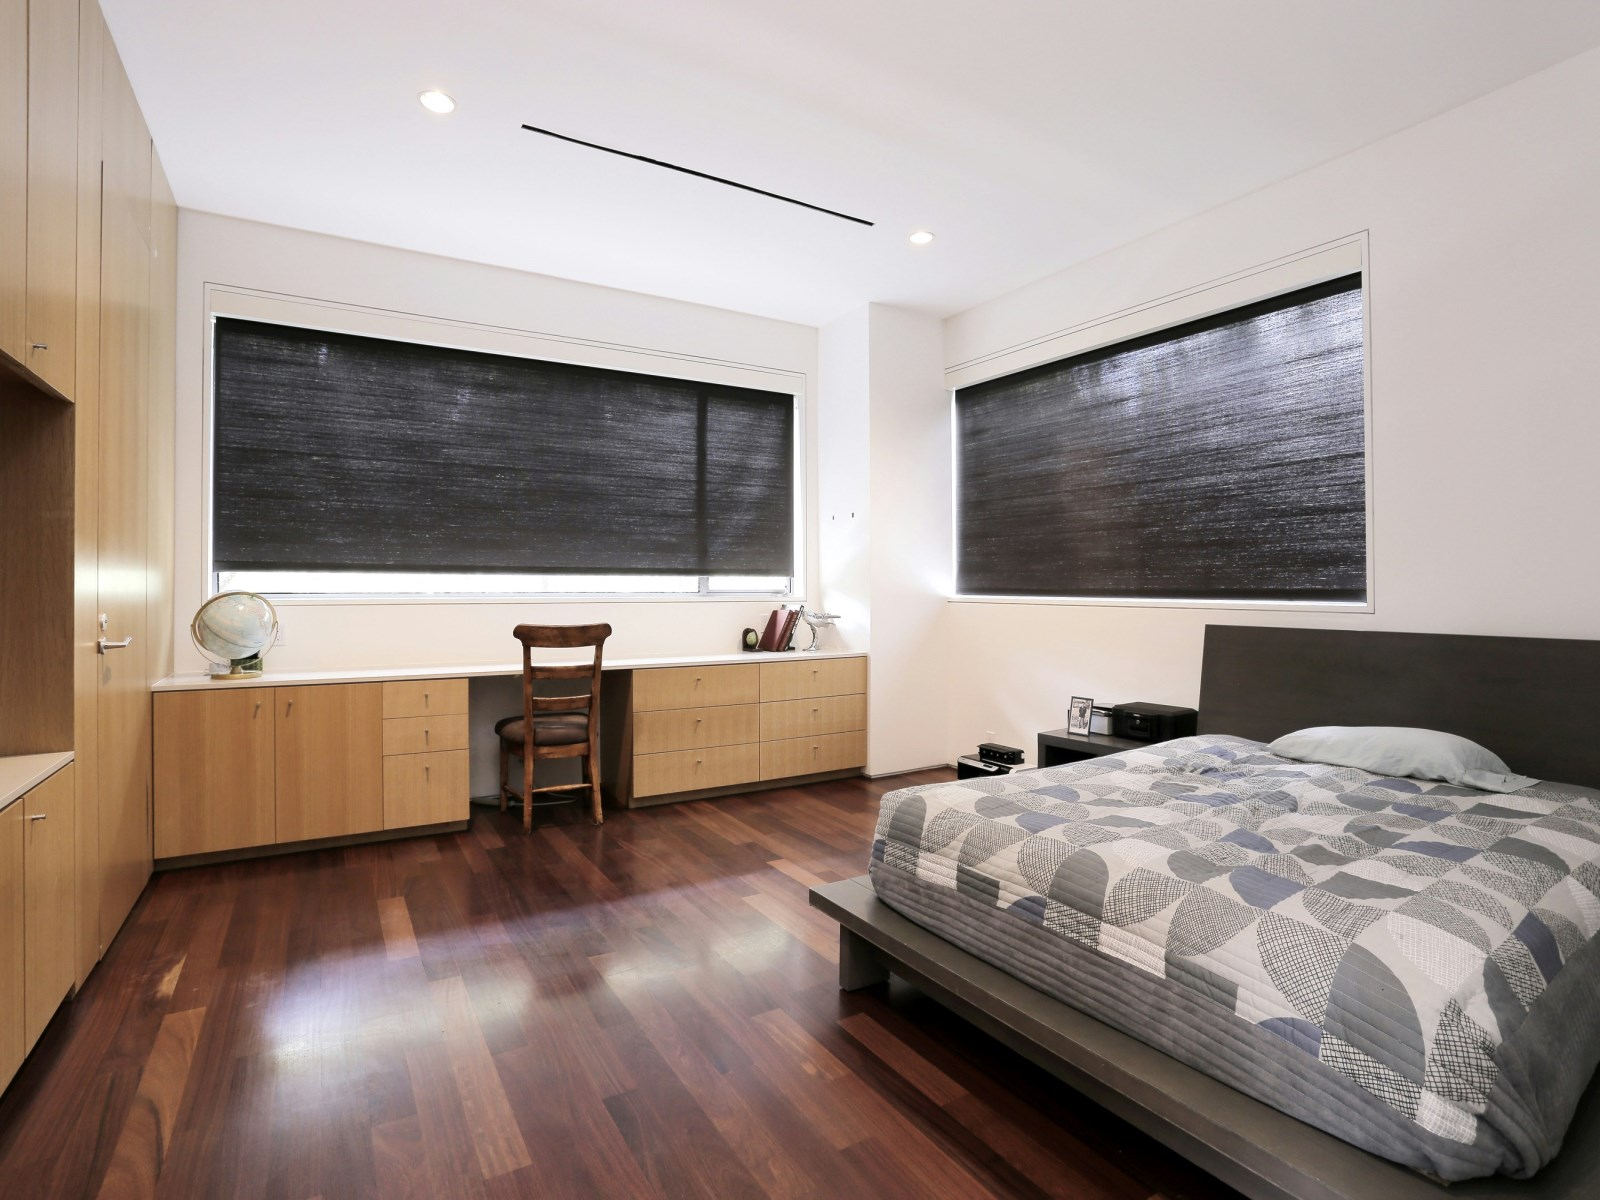 Bedroom Privacy Shades - A home with formidable architecture and a light interior